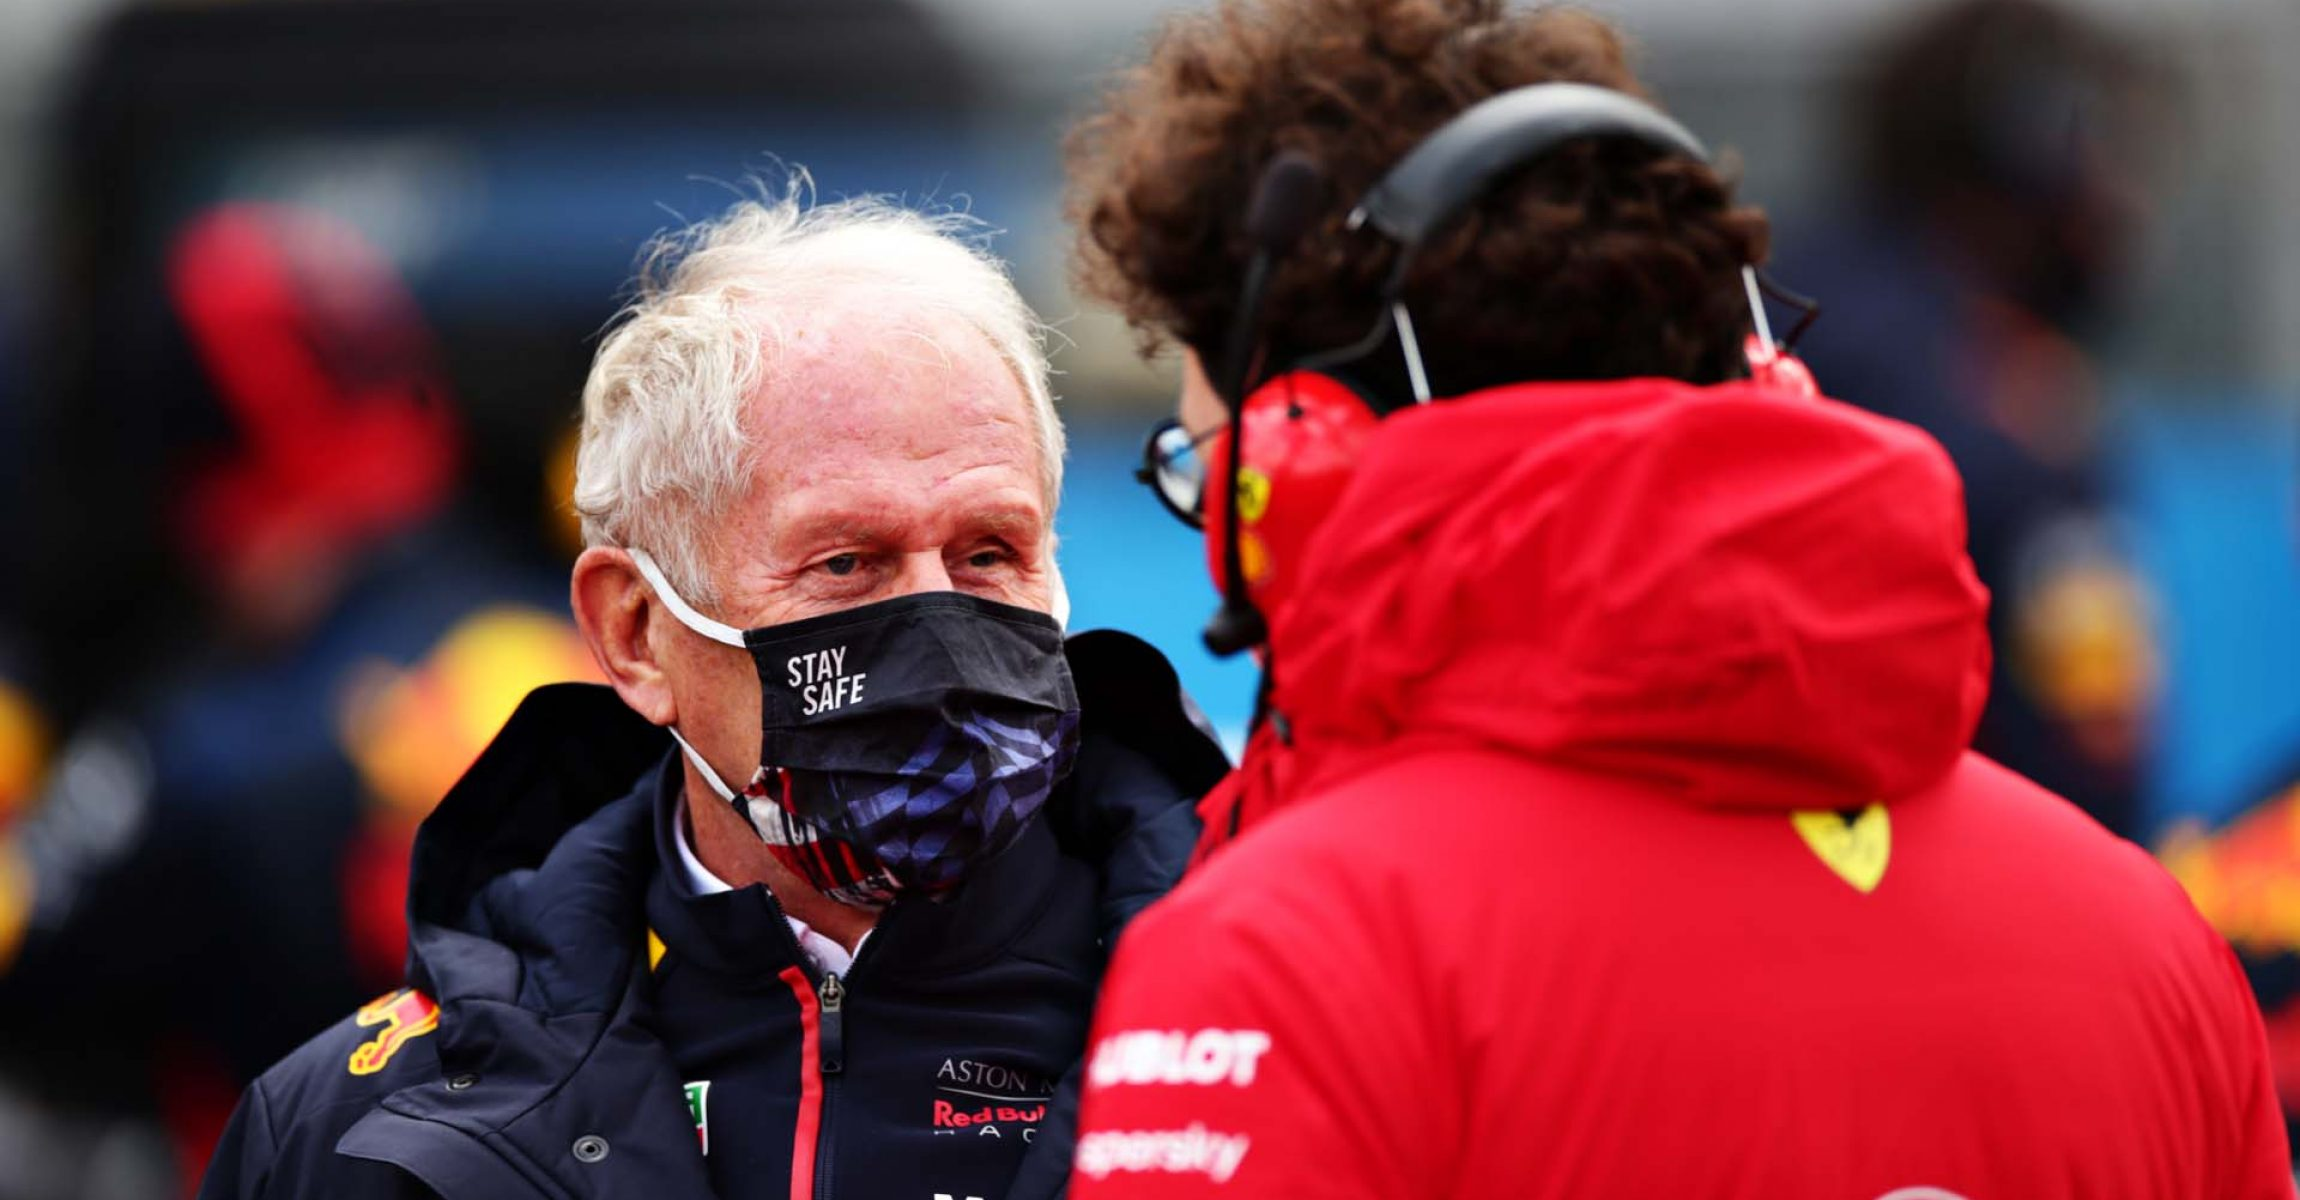 NUERBURG, GERMANY - OCTOBER 11: Red Bull Racing Team Consultant Dr Helmut Marko and Scuderia Ferrari Team Principal Mattia Binotto talk on the grid before the F1 Eifel Grand Prix at Nuerburgring on October 11, 2020 in Nuerburg, Germany. (Photo by Peter Fox/Getty Images)